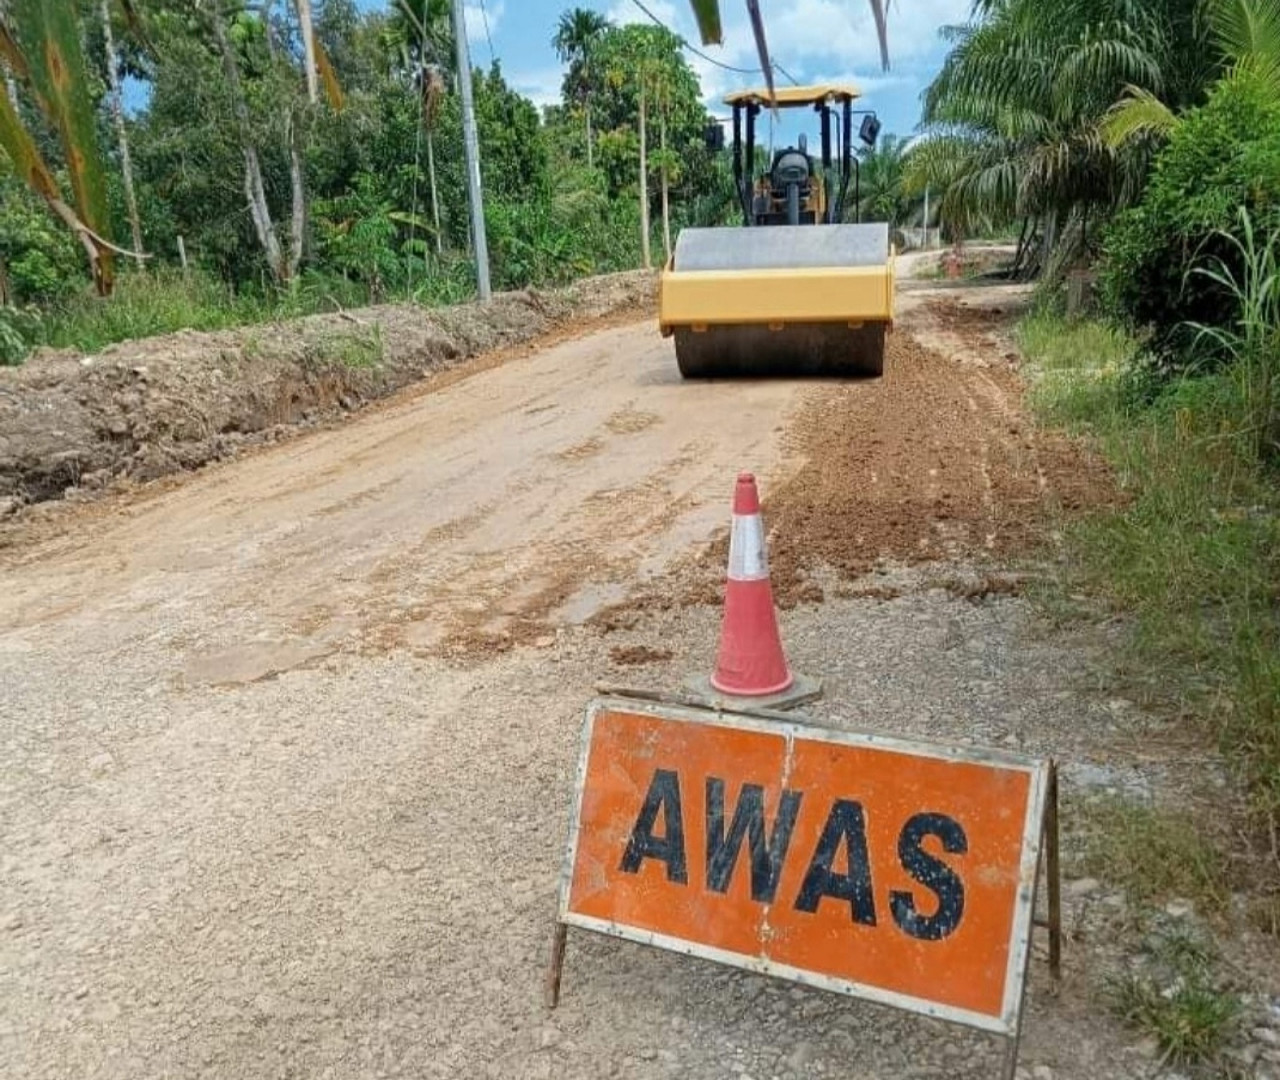 If road repairs mean state polls are impending, will Sarawak's three million-strong population have to brace for another Covid-19 surge? – STEPHEN THEN/The Vibes pic, October 10, 2021